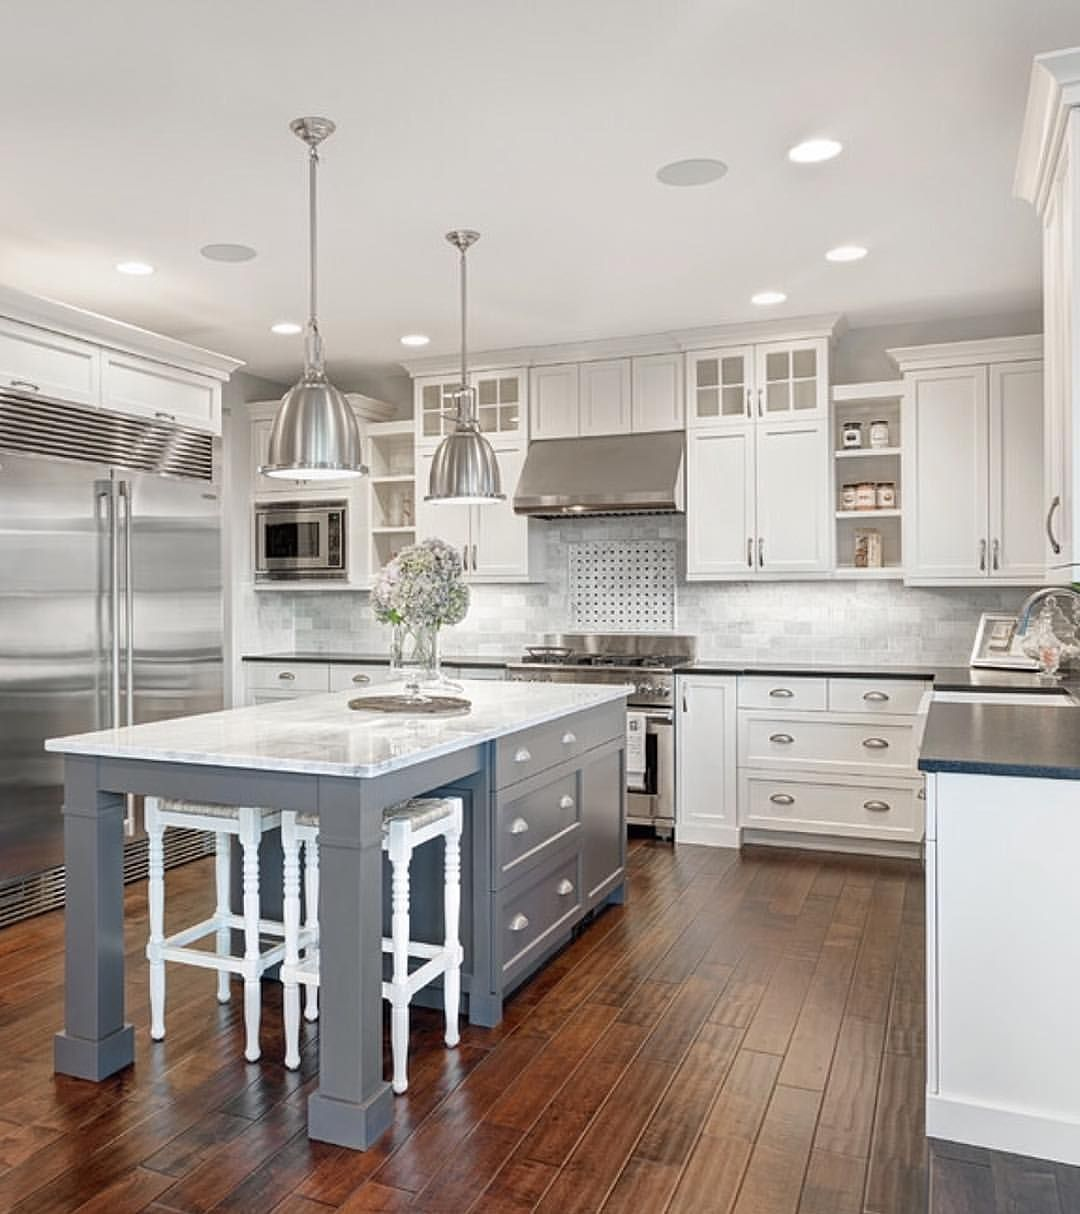 Interior Design On Instagram Not Sure Who Designed This Kitchen But They Sure Did A Beautiful Job Kitchen Design Traditional Kitchen Design Home Kitchens